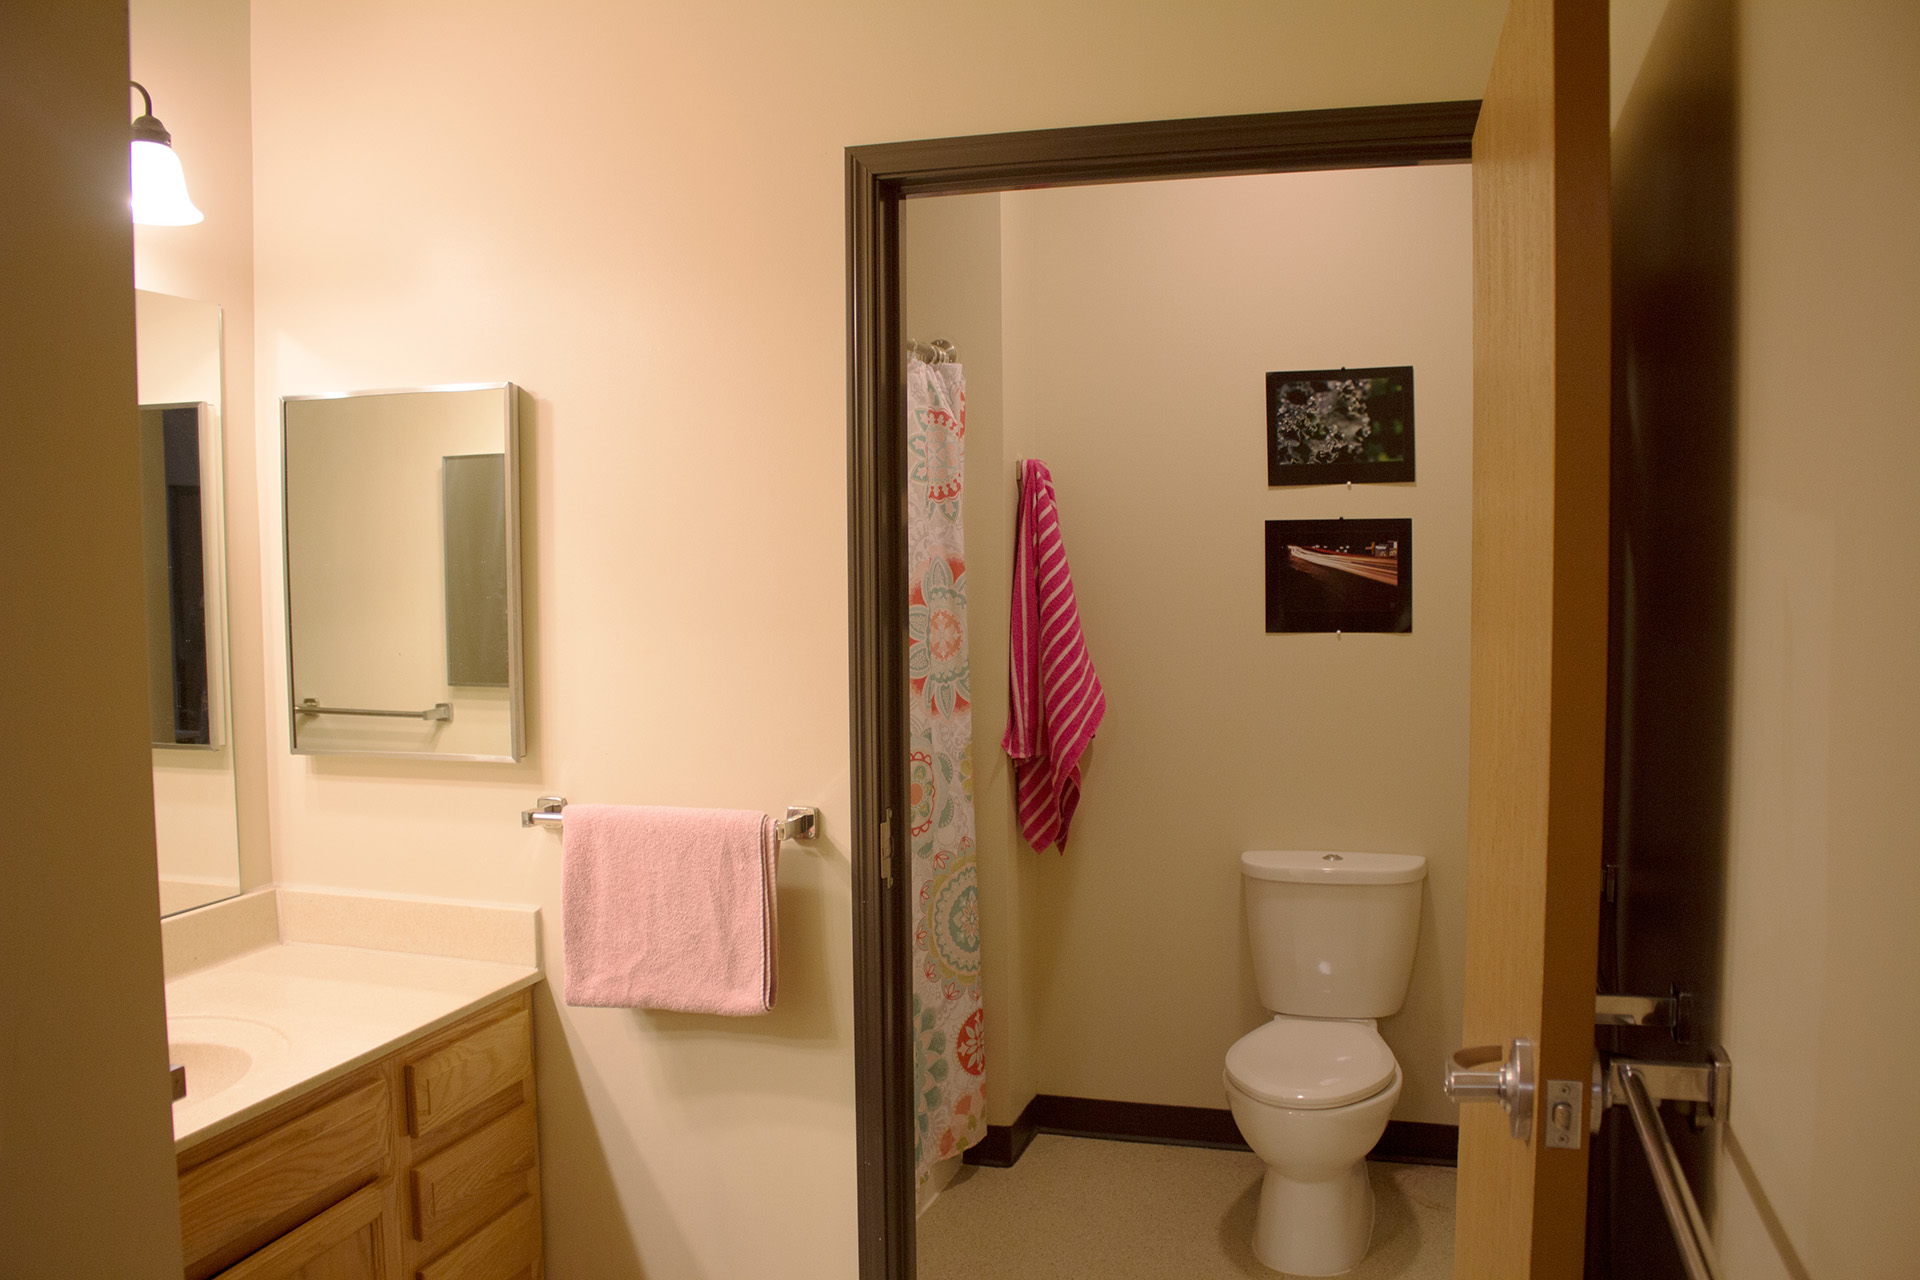 Bathroom in Residence Halls